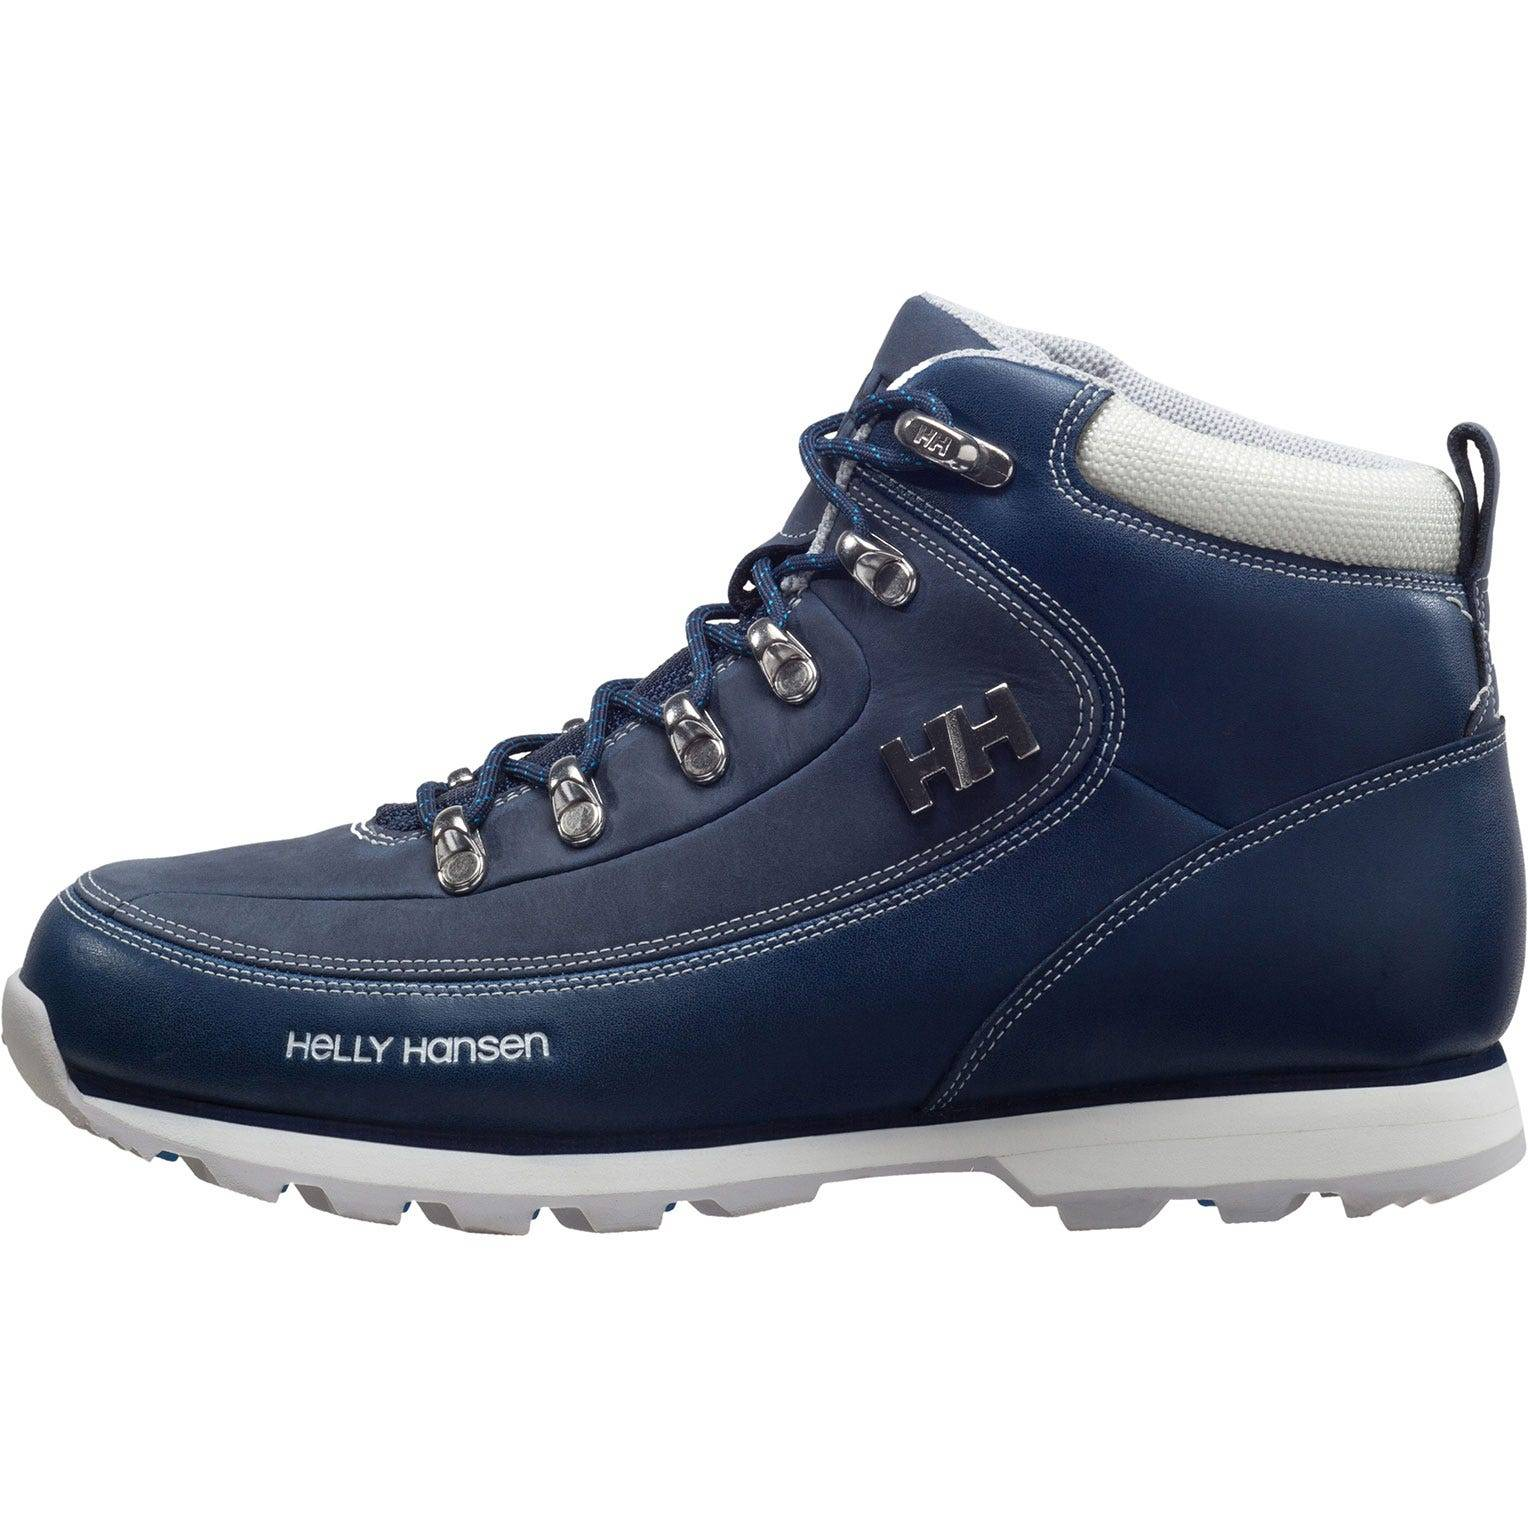 Helly Hansen W The Forester Womens Winter Boot Navy 8.5